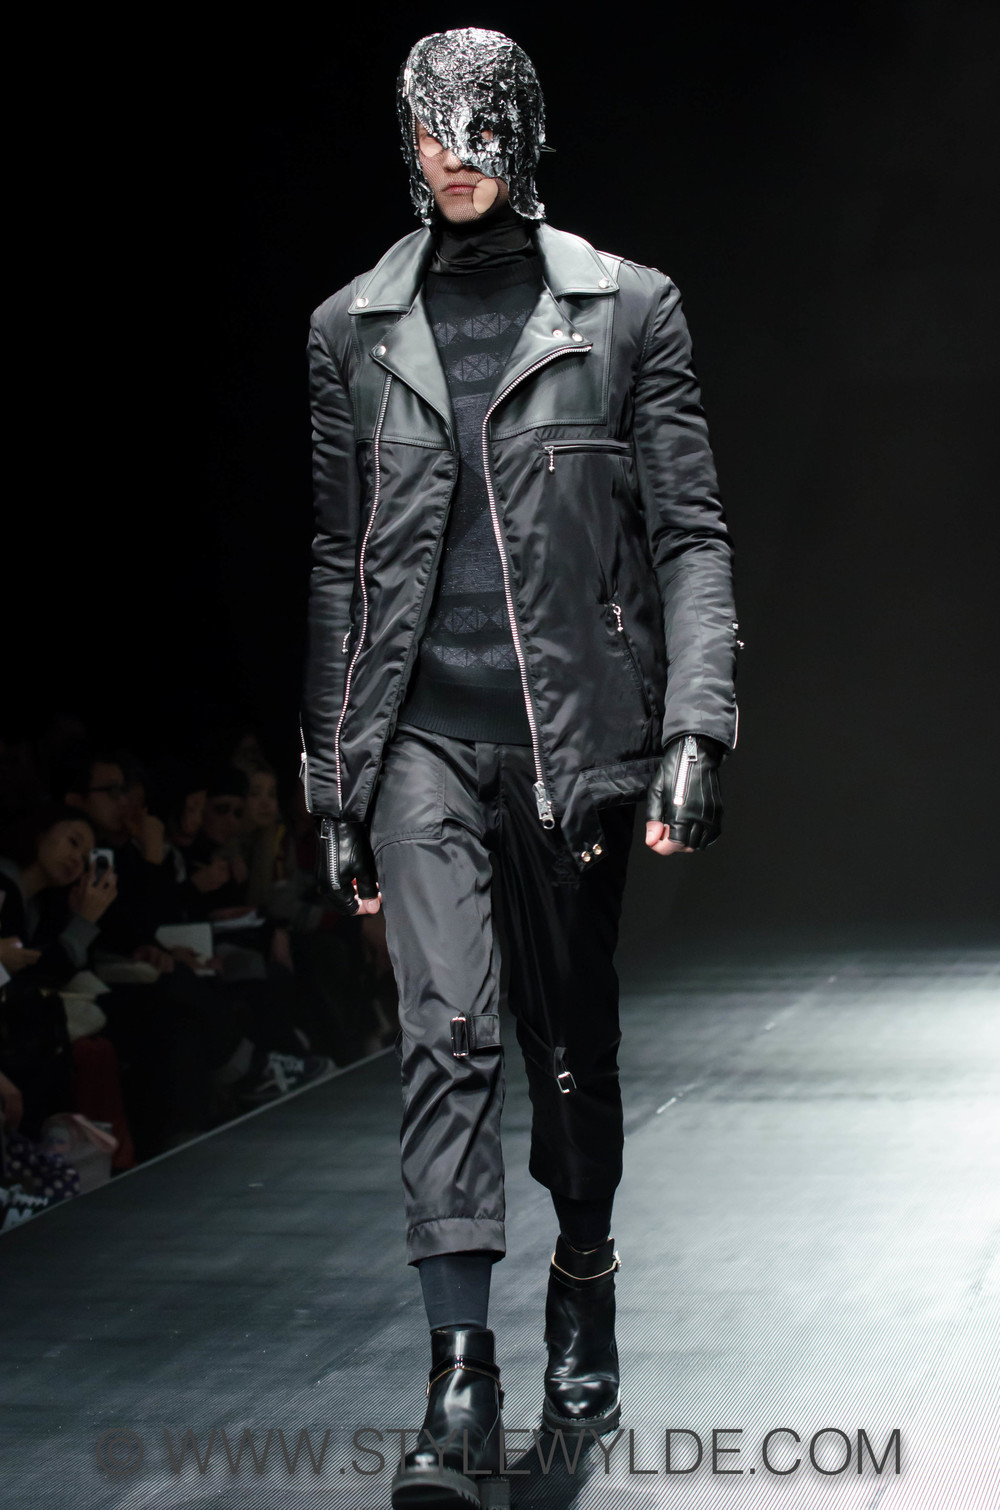 StyleWylde_99percentIS_AW14_edited (1 of 1)-9.jpg